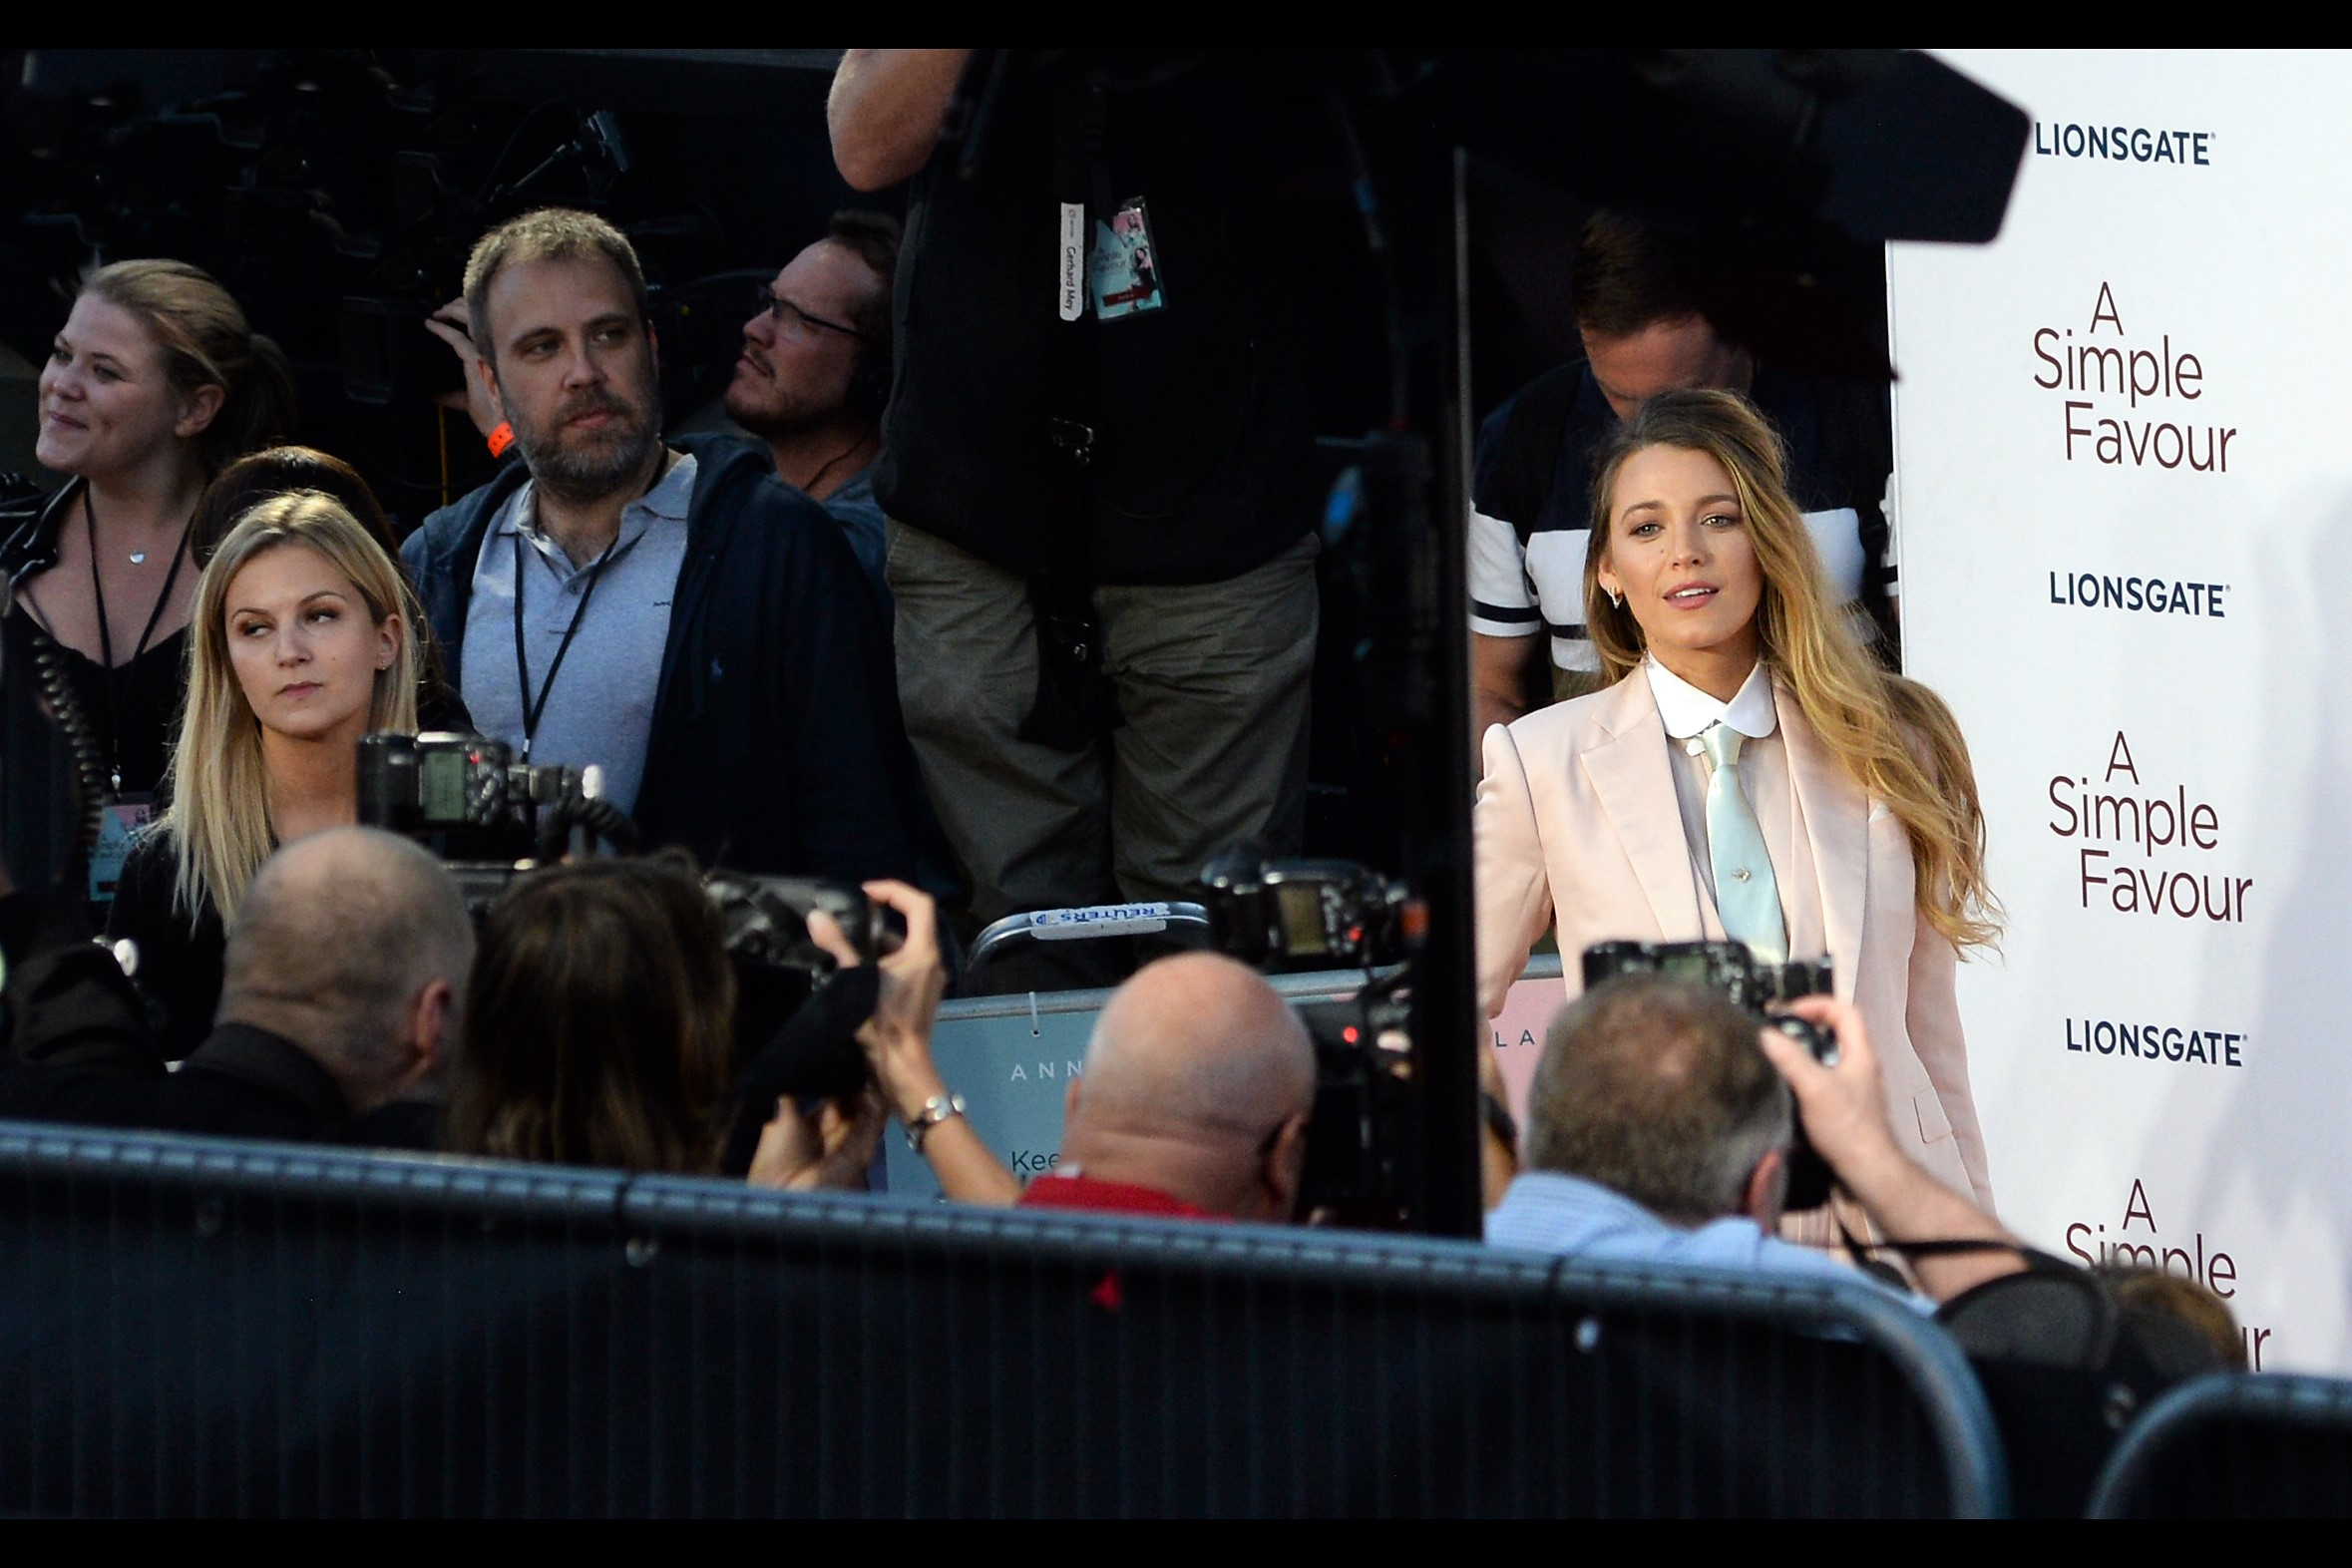 While my brain is still reeling from the circular reasoning chain of the prior comment, I appear to have gotten more eye-contact and a HALF-SMILE from Blake Lively! …. and you know, a man could compose epic poems about half-smiles from Blake Lively… and they'd probably be awful, but that doesn't mean they wouldn't be sincere.